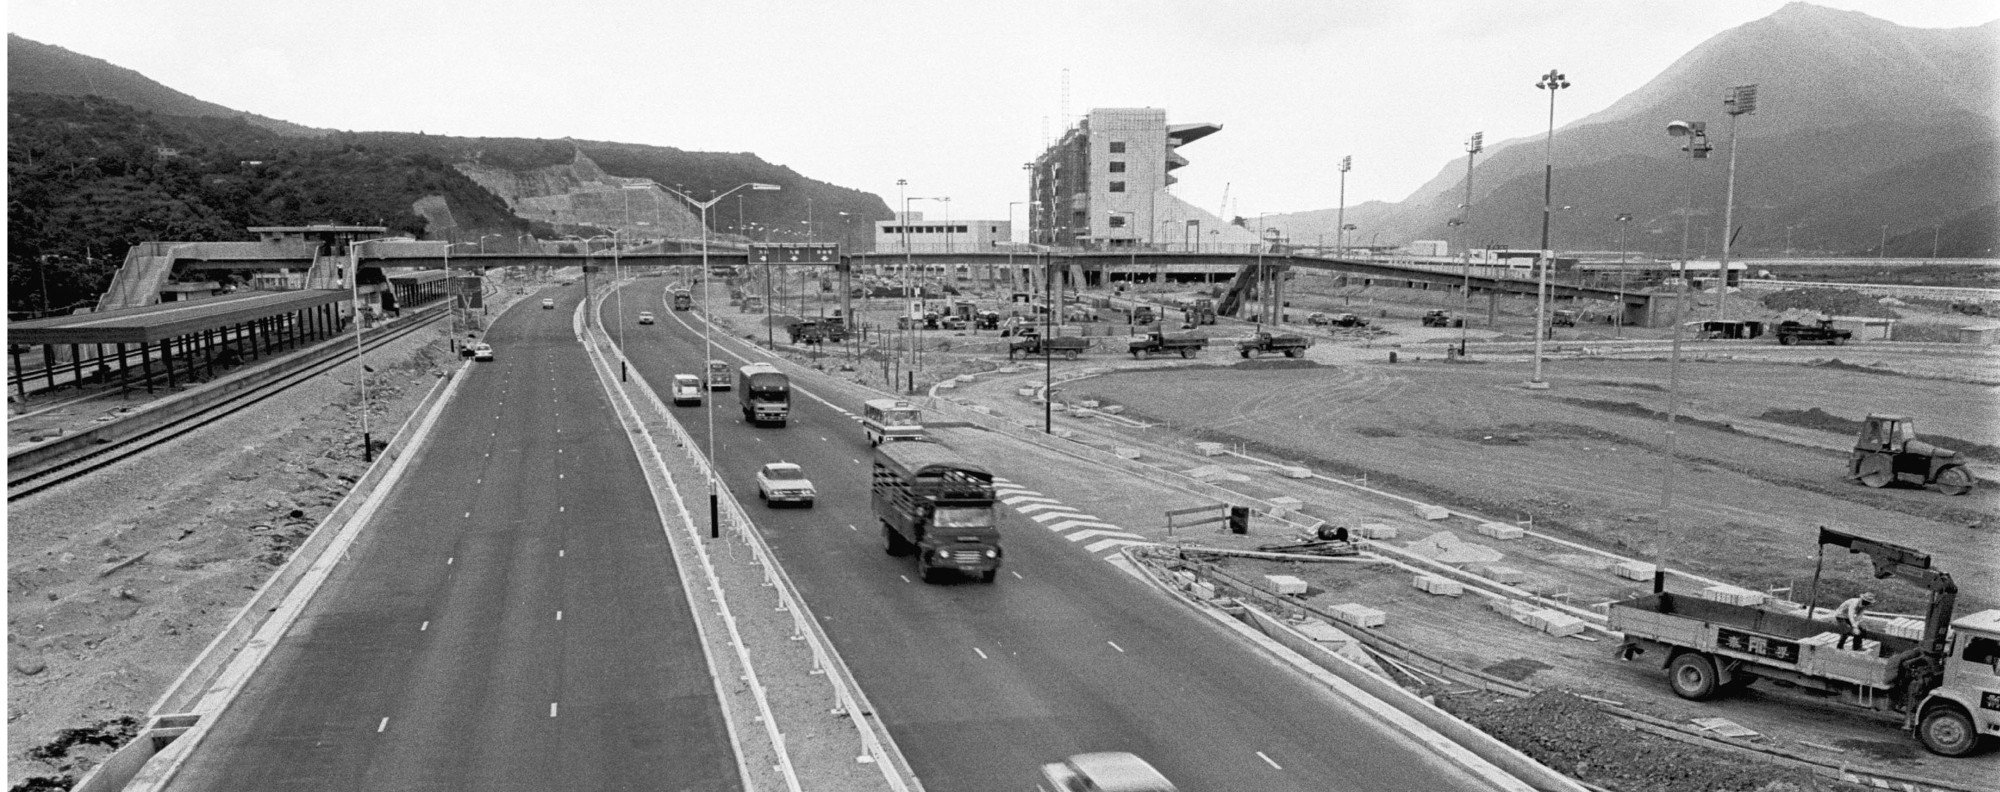 Sha Tin Racecourse in 1978, when a pay dispute involving mafoos led to three race meetings being cancelled.